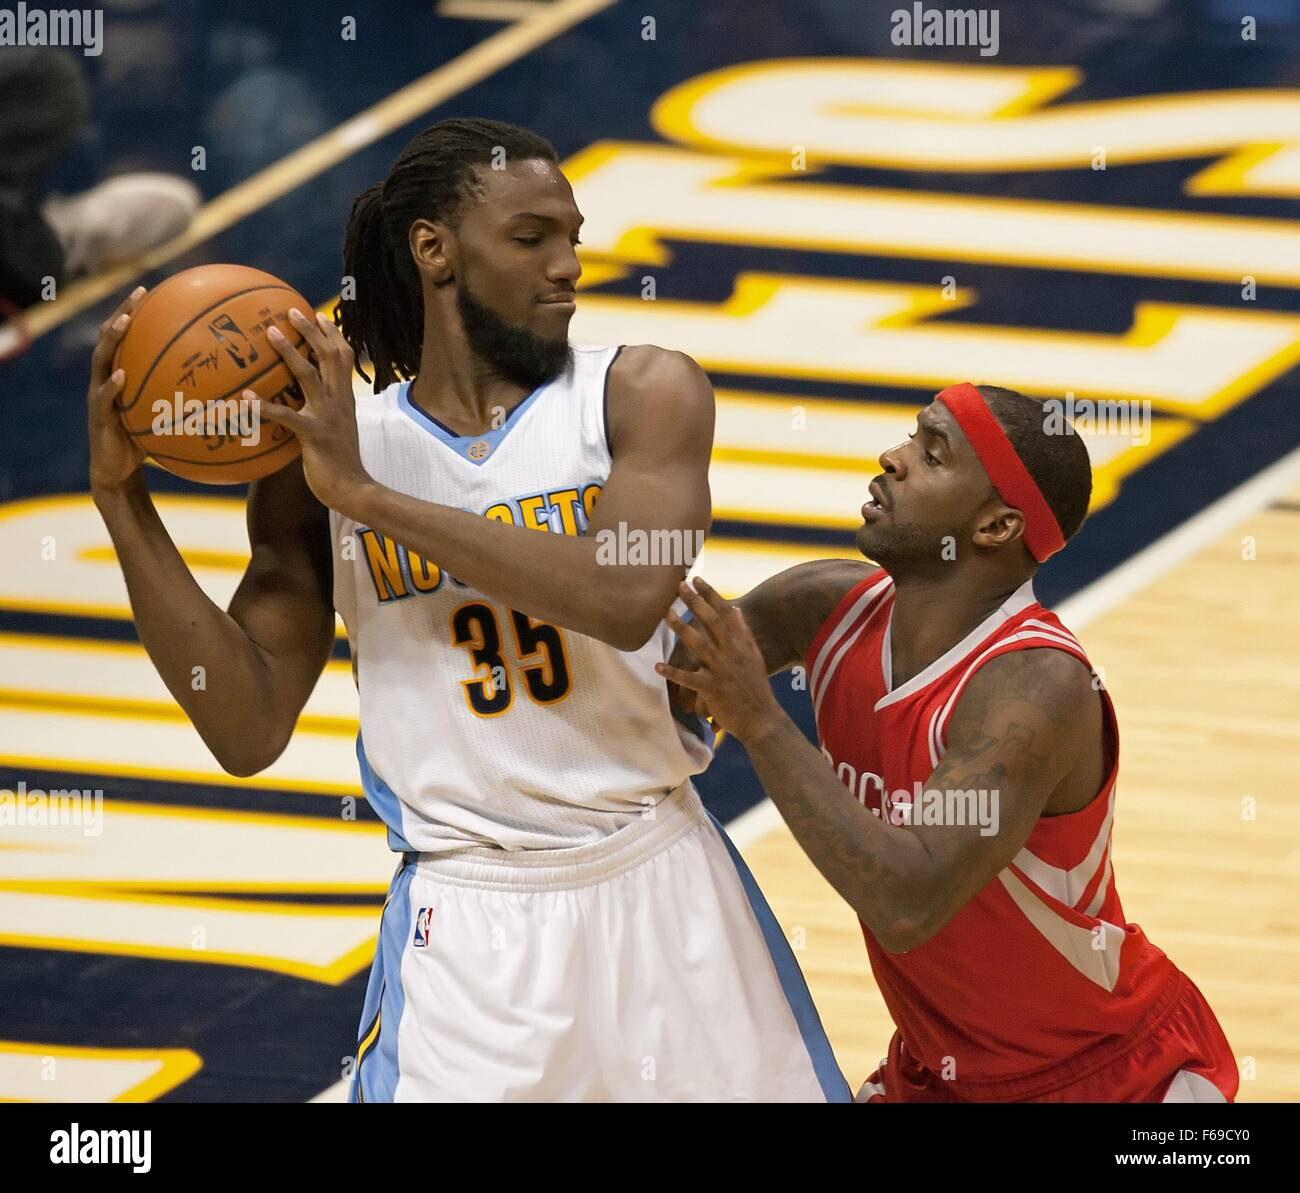 Denver Nuggets Stock Photos And Pictures: Denver Nuggets Kenneth Faried Grabs Stock Photos & Denver